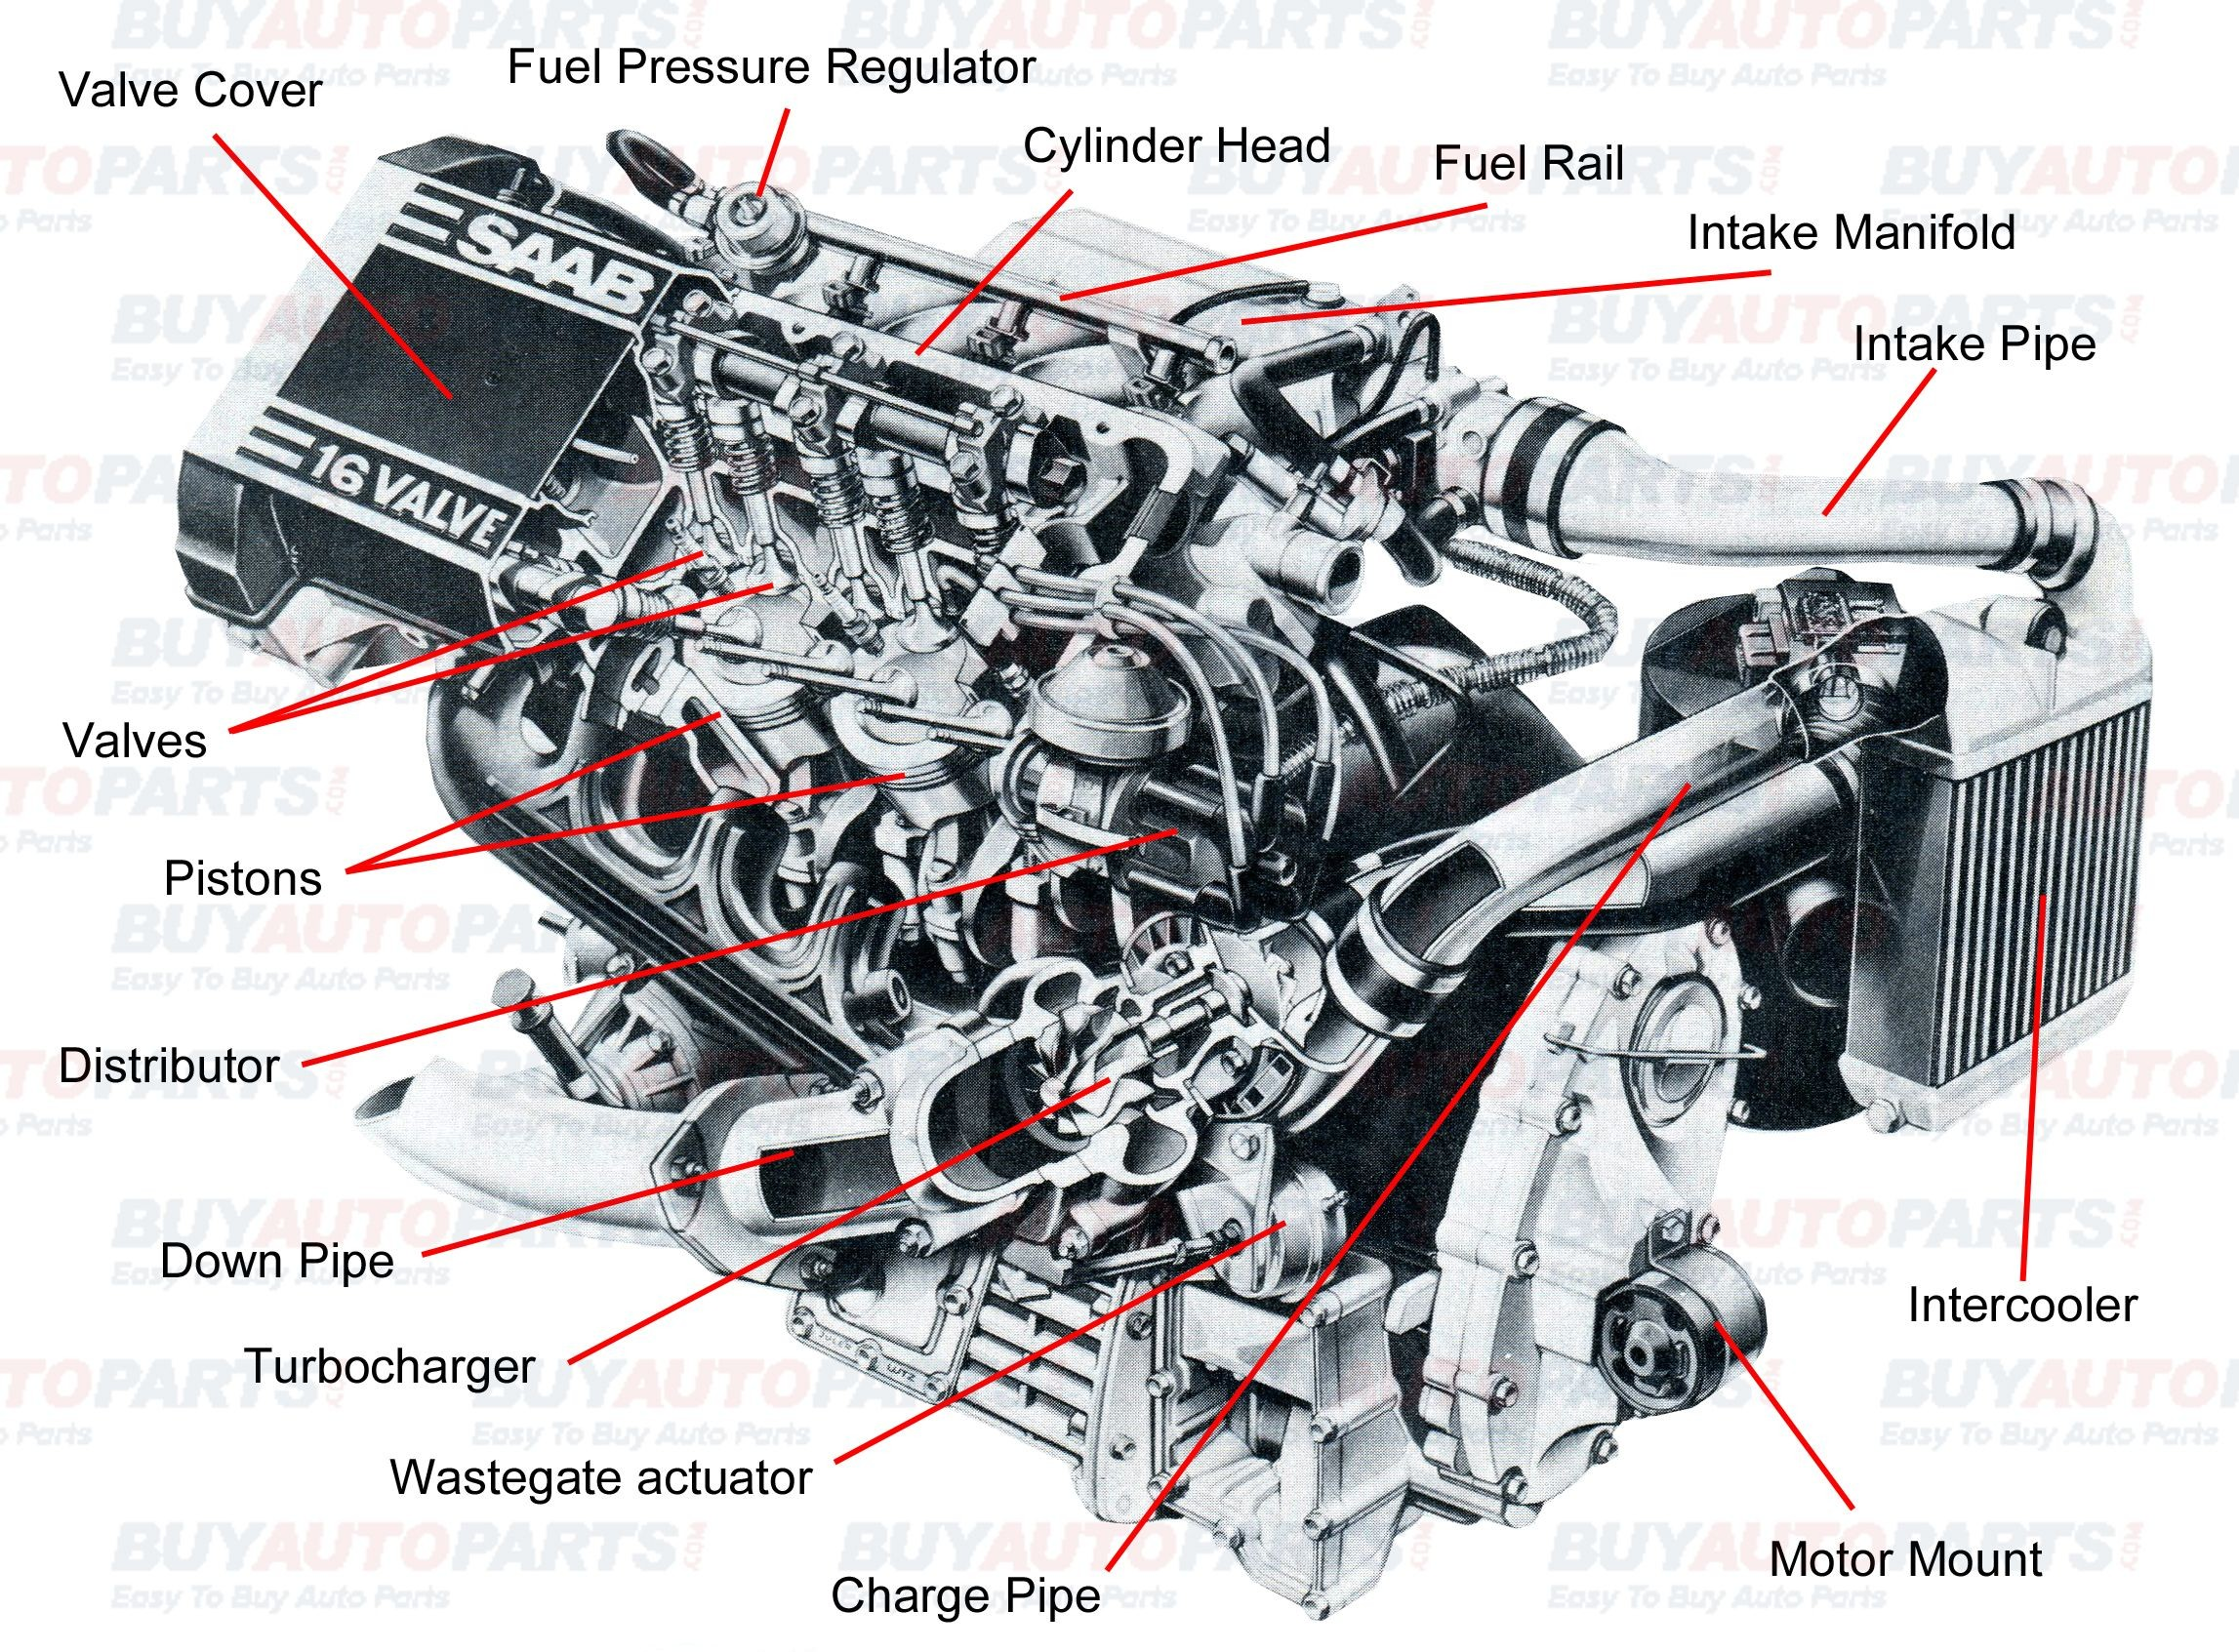 Auto Parts Diagrams Pin by Jimmiejanet Testellamwfz On What Does An Engine with Turbo Of Auto Parts Diagrams